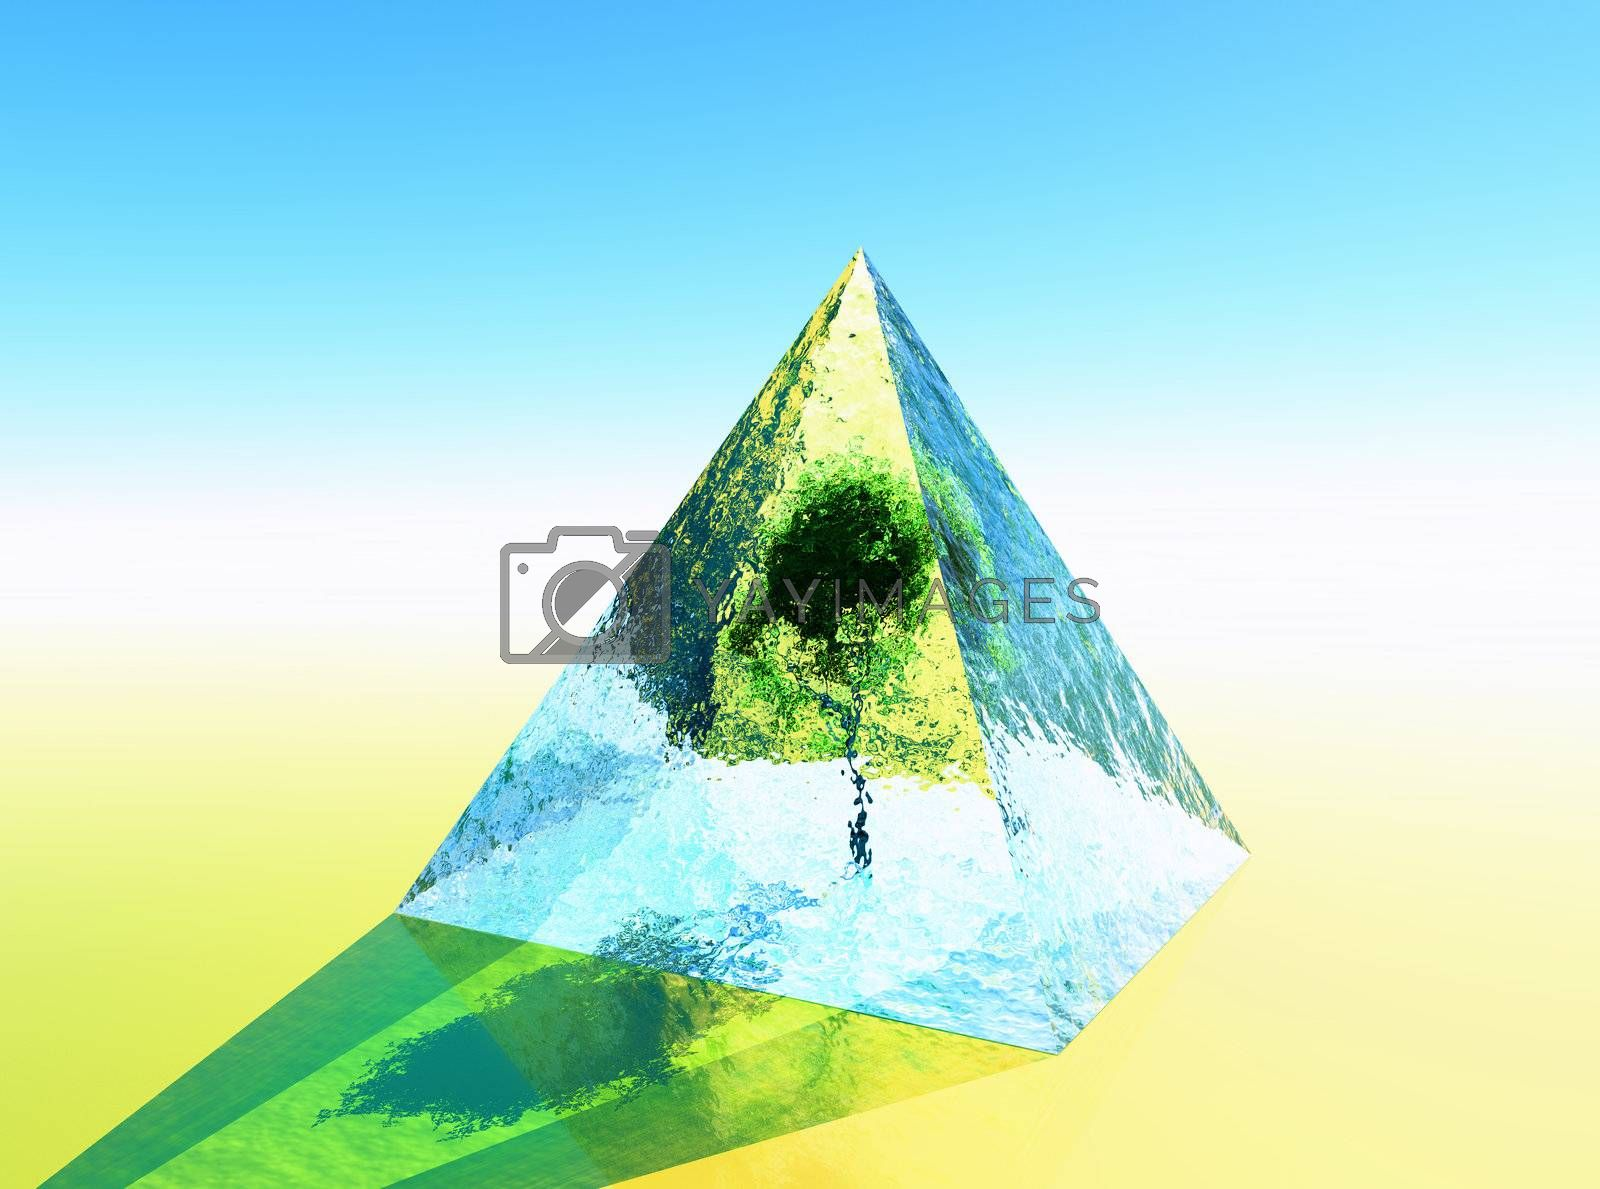 a pyramid in 3d modeling with a tree inside